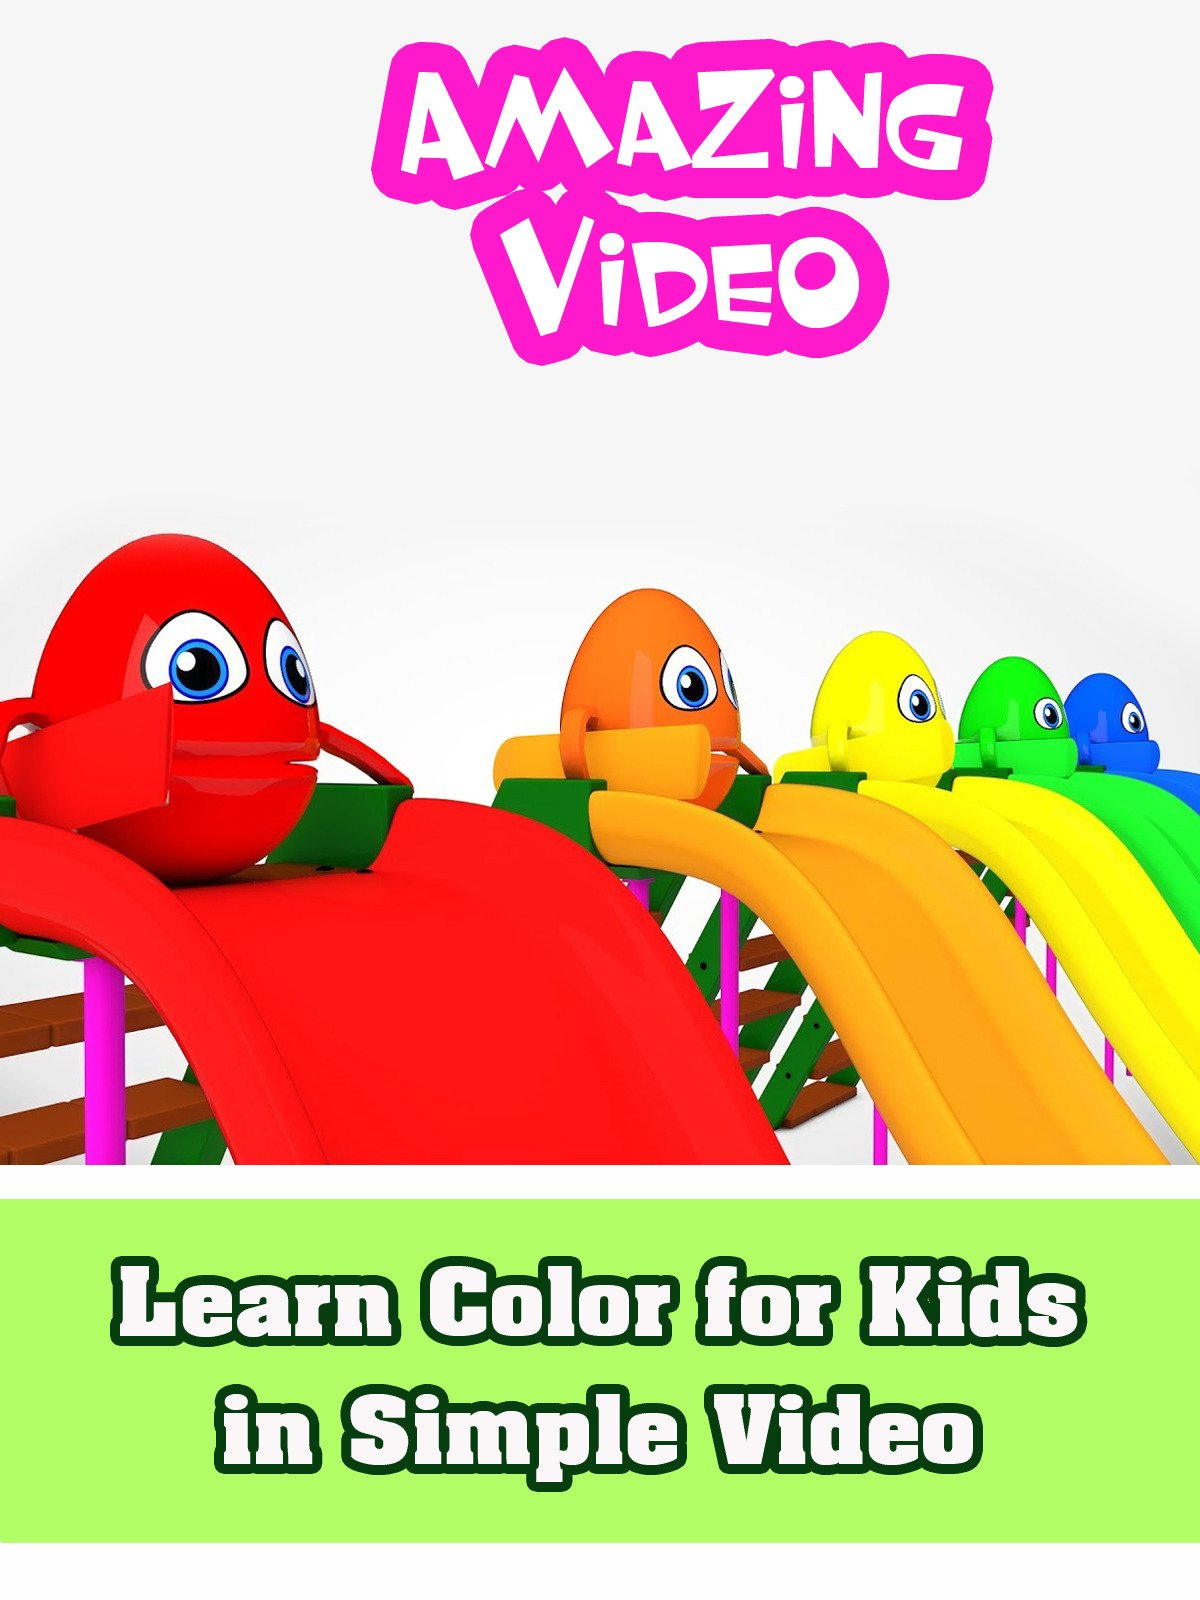 Learn Color for Kids in Simple Video